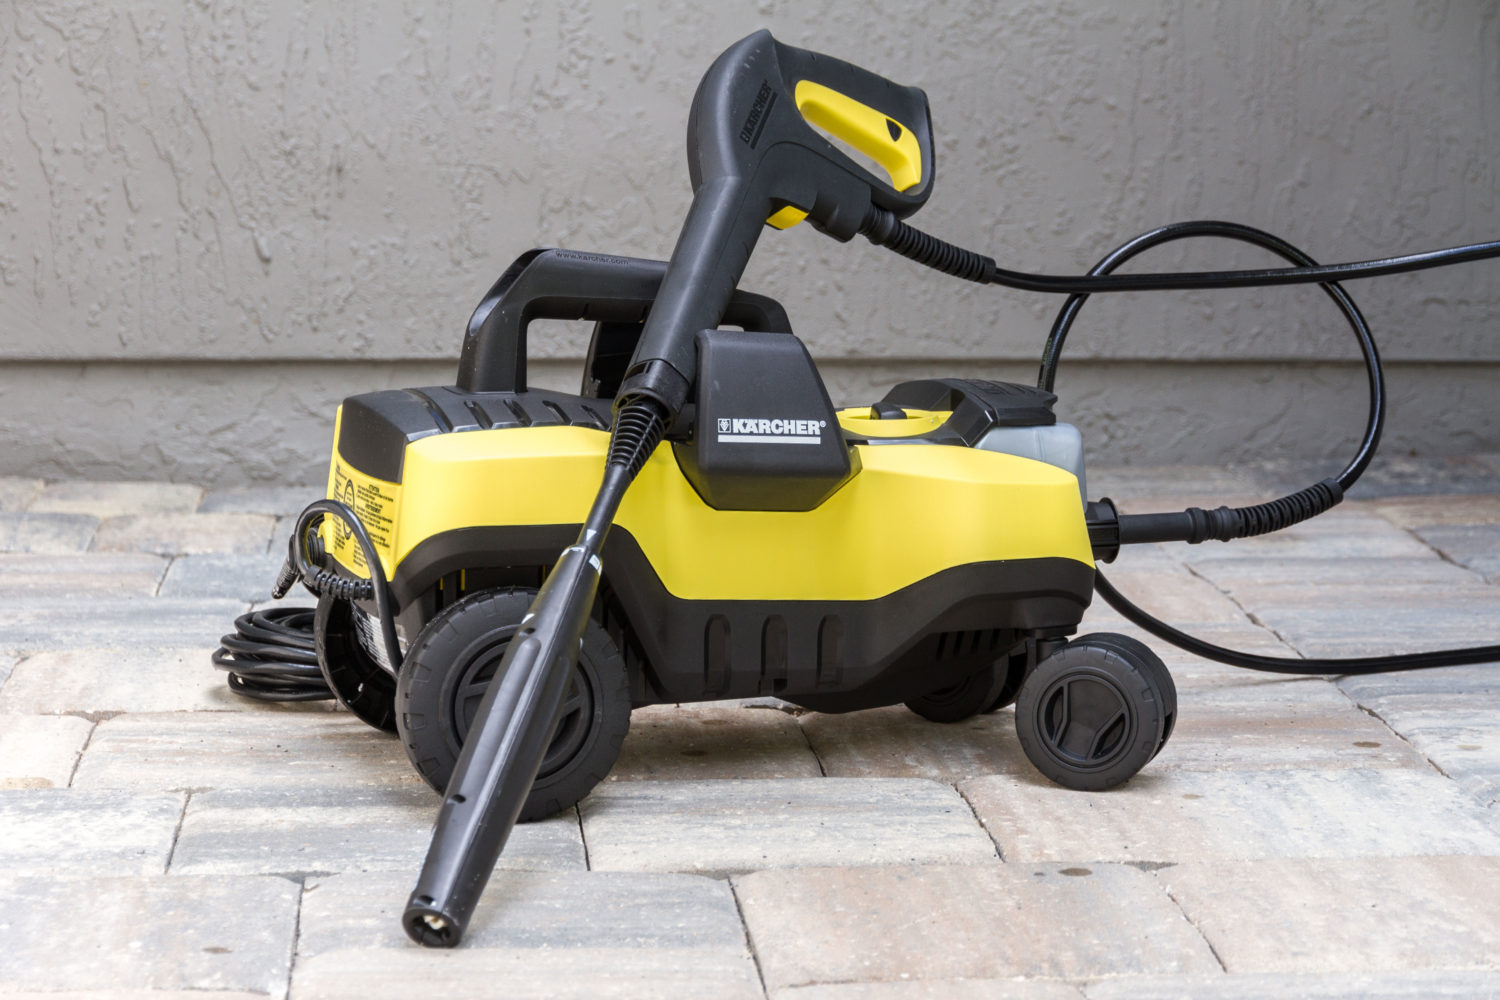 Hands On Karcher Quot Follow Me Quot Electric Pressure Washer